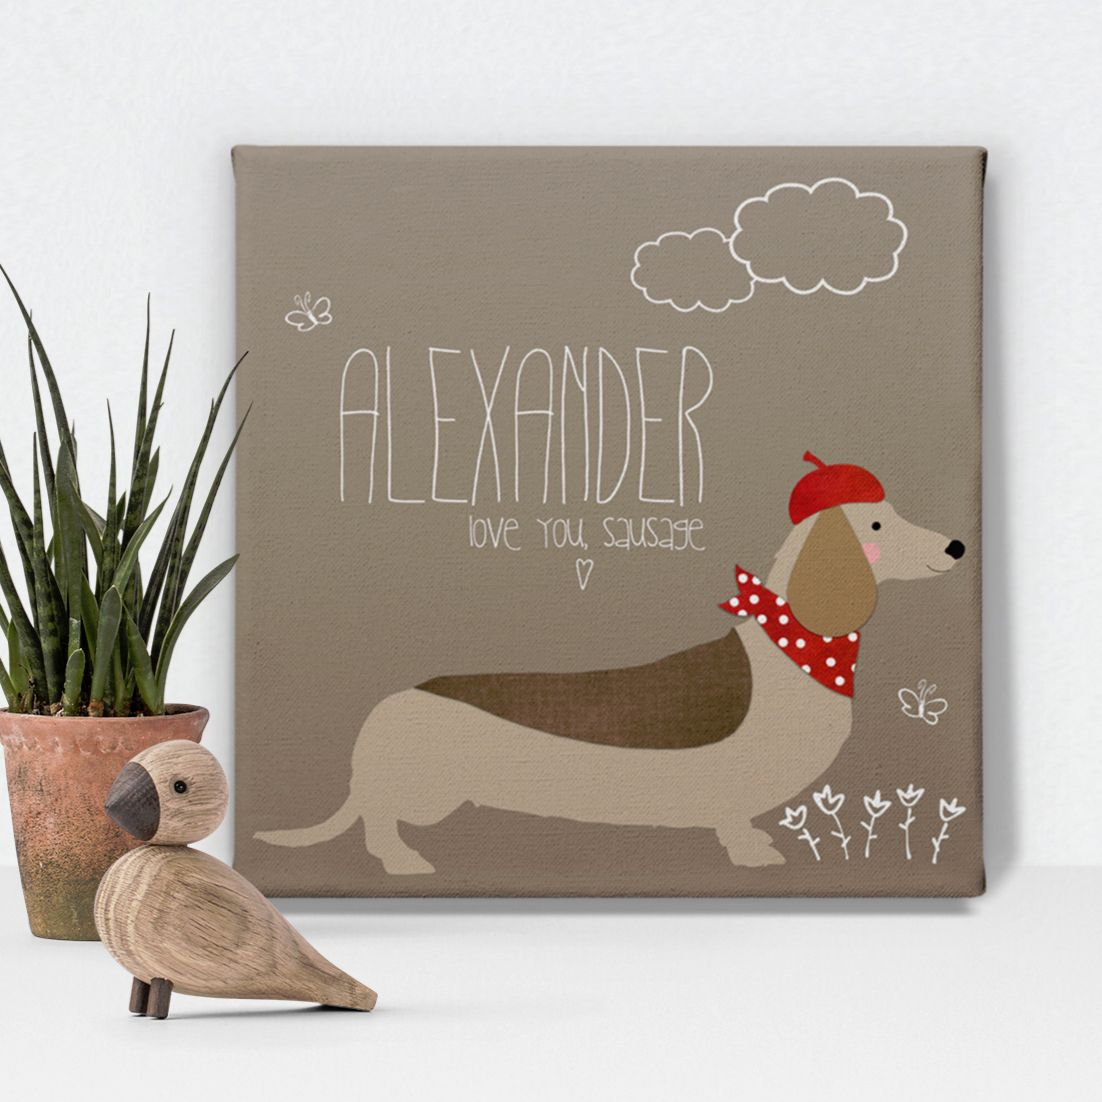 Sausage Dog dachshund personalised gift